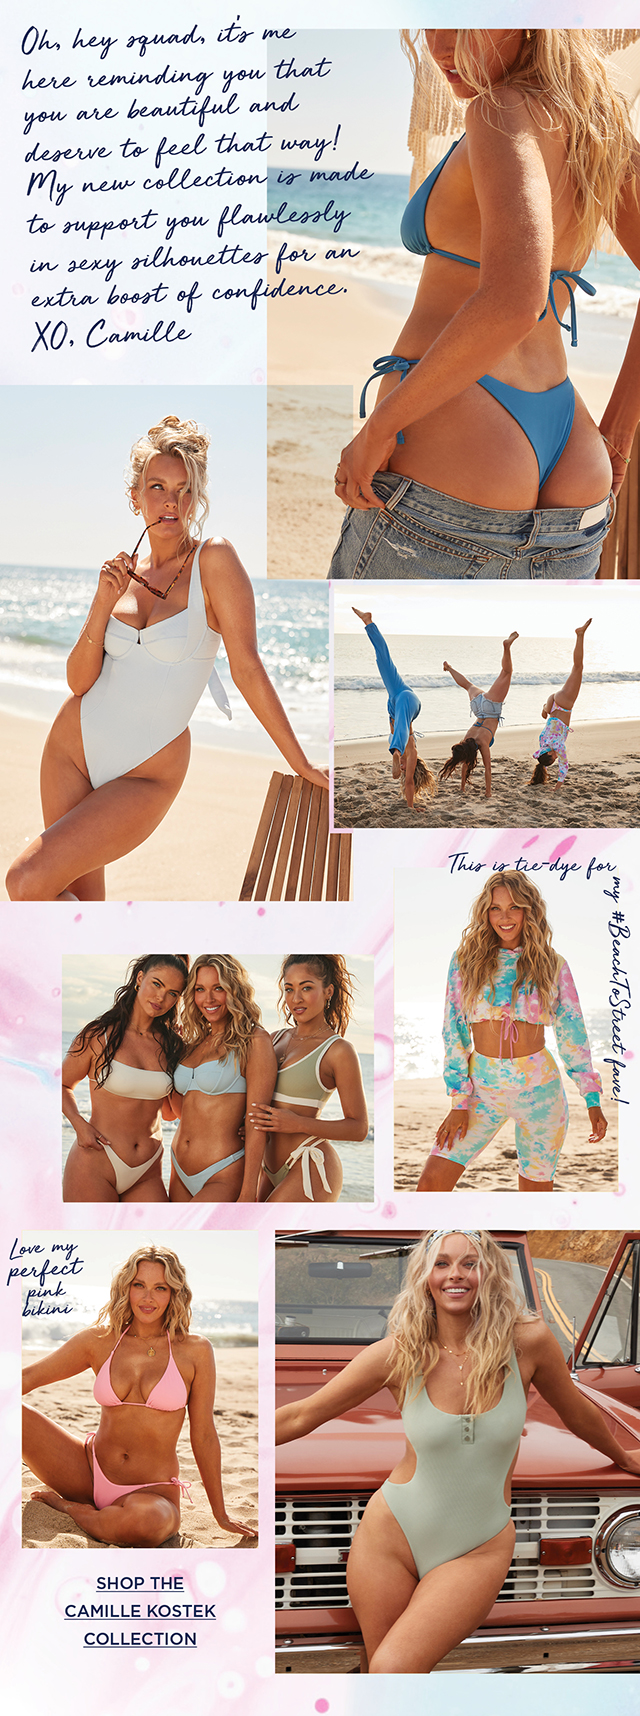 Shop The Camille Kostek Collection